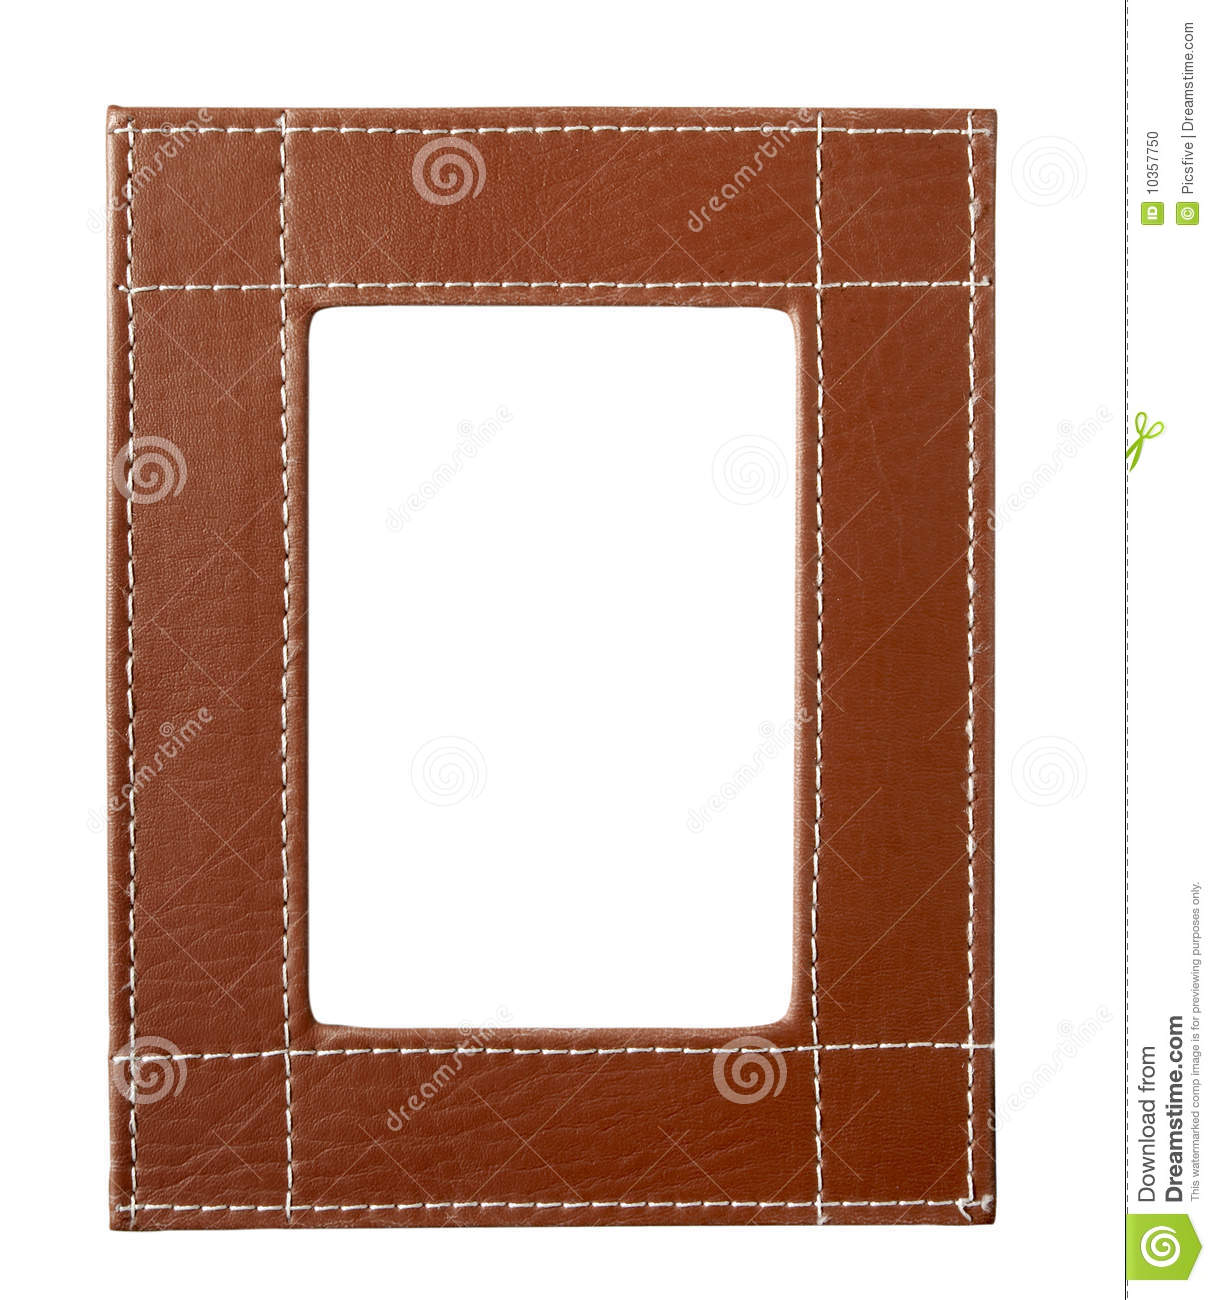 Frame edges brown leather stock photo. Image of background - 10357750